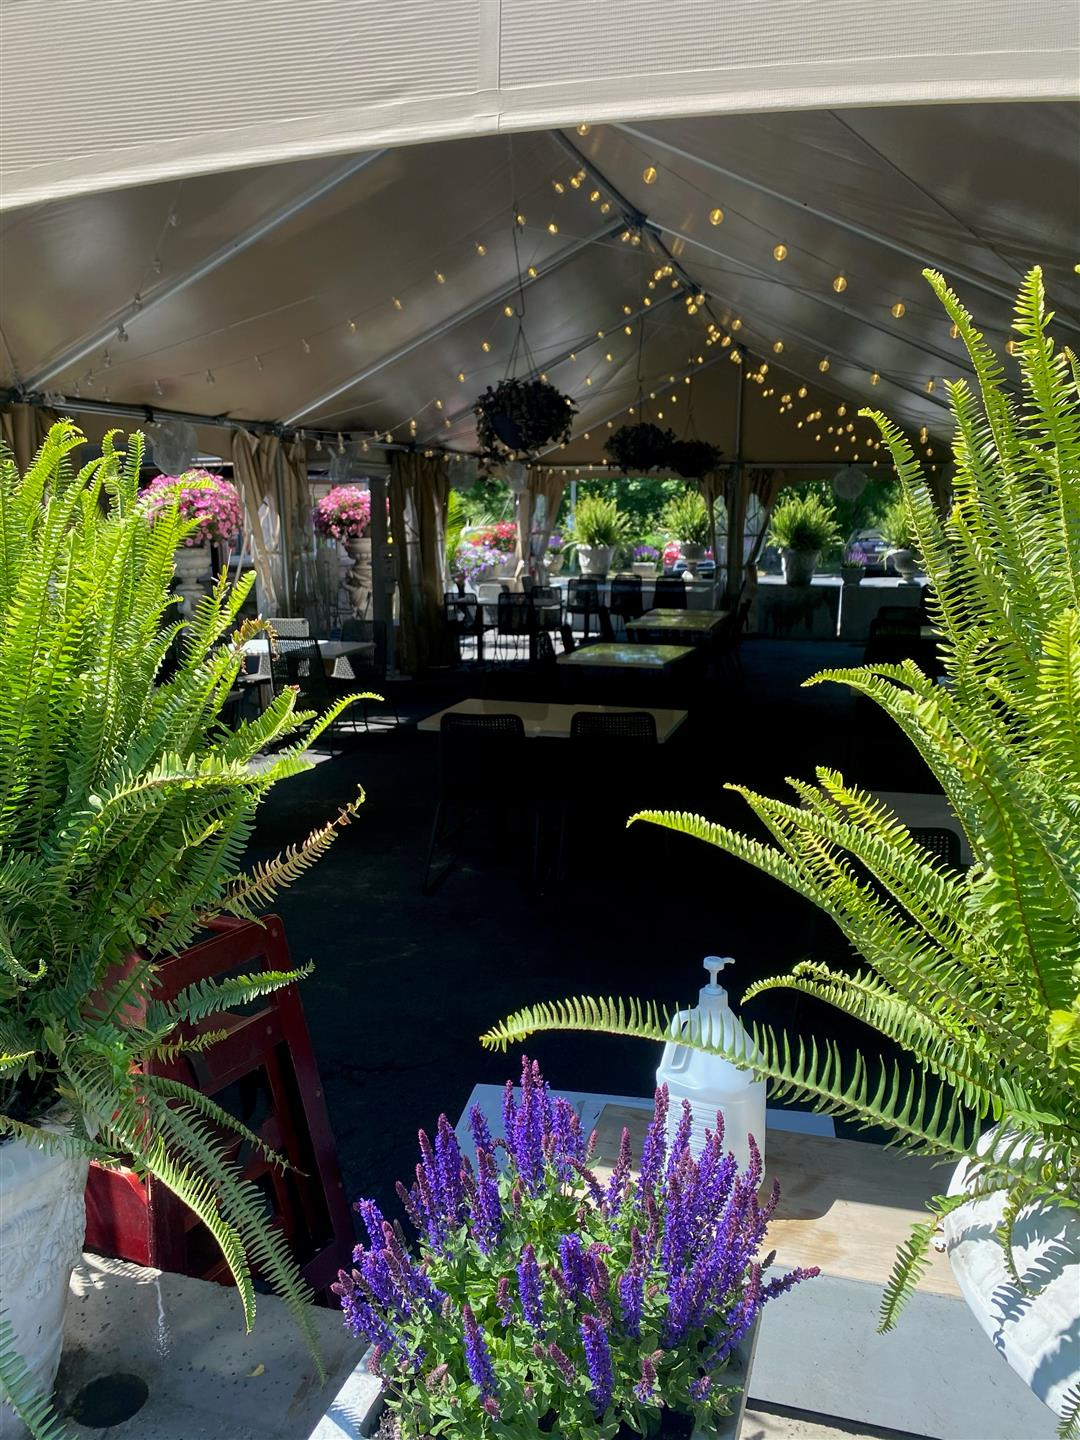 outside patio and tent